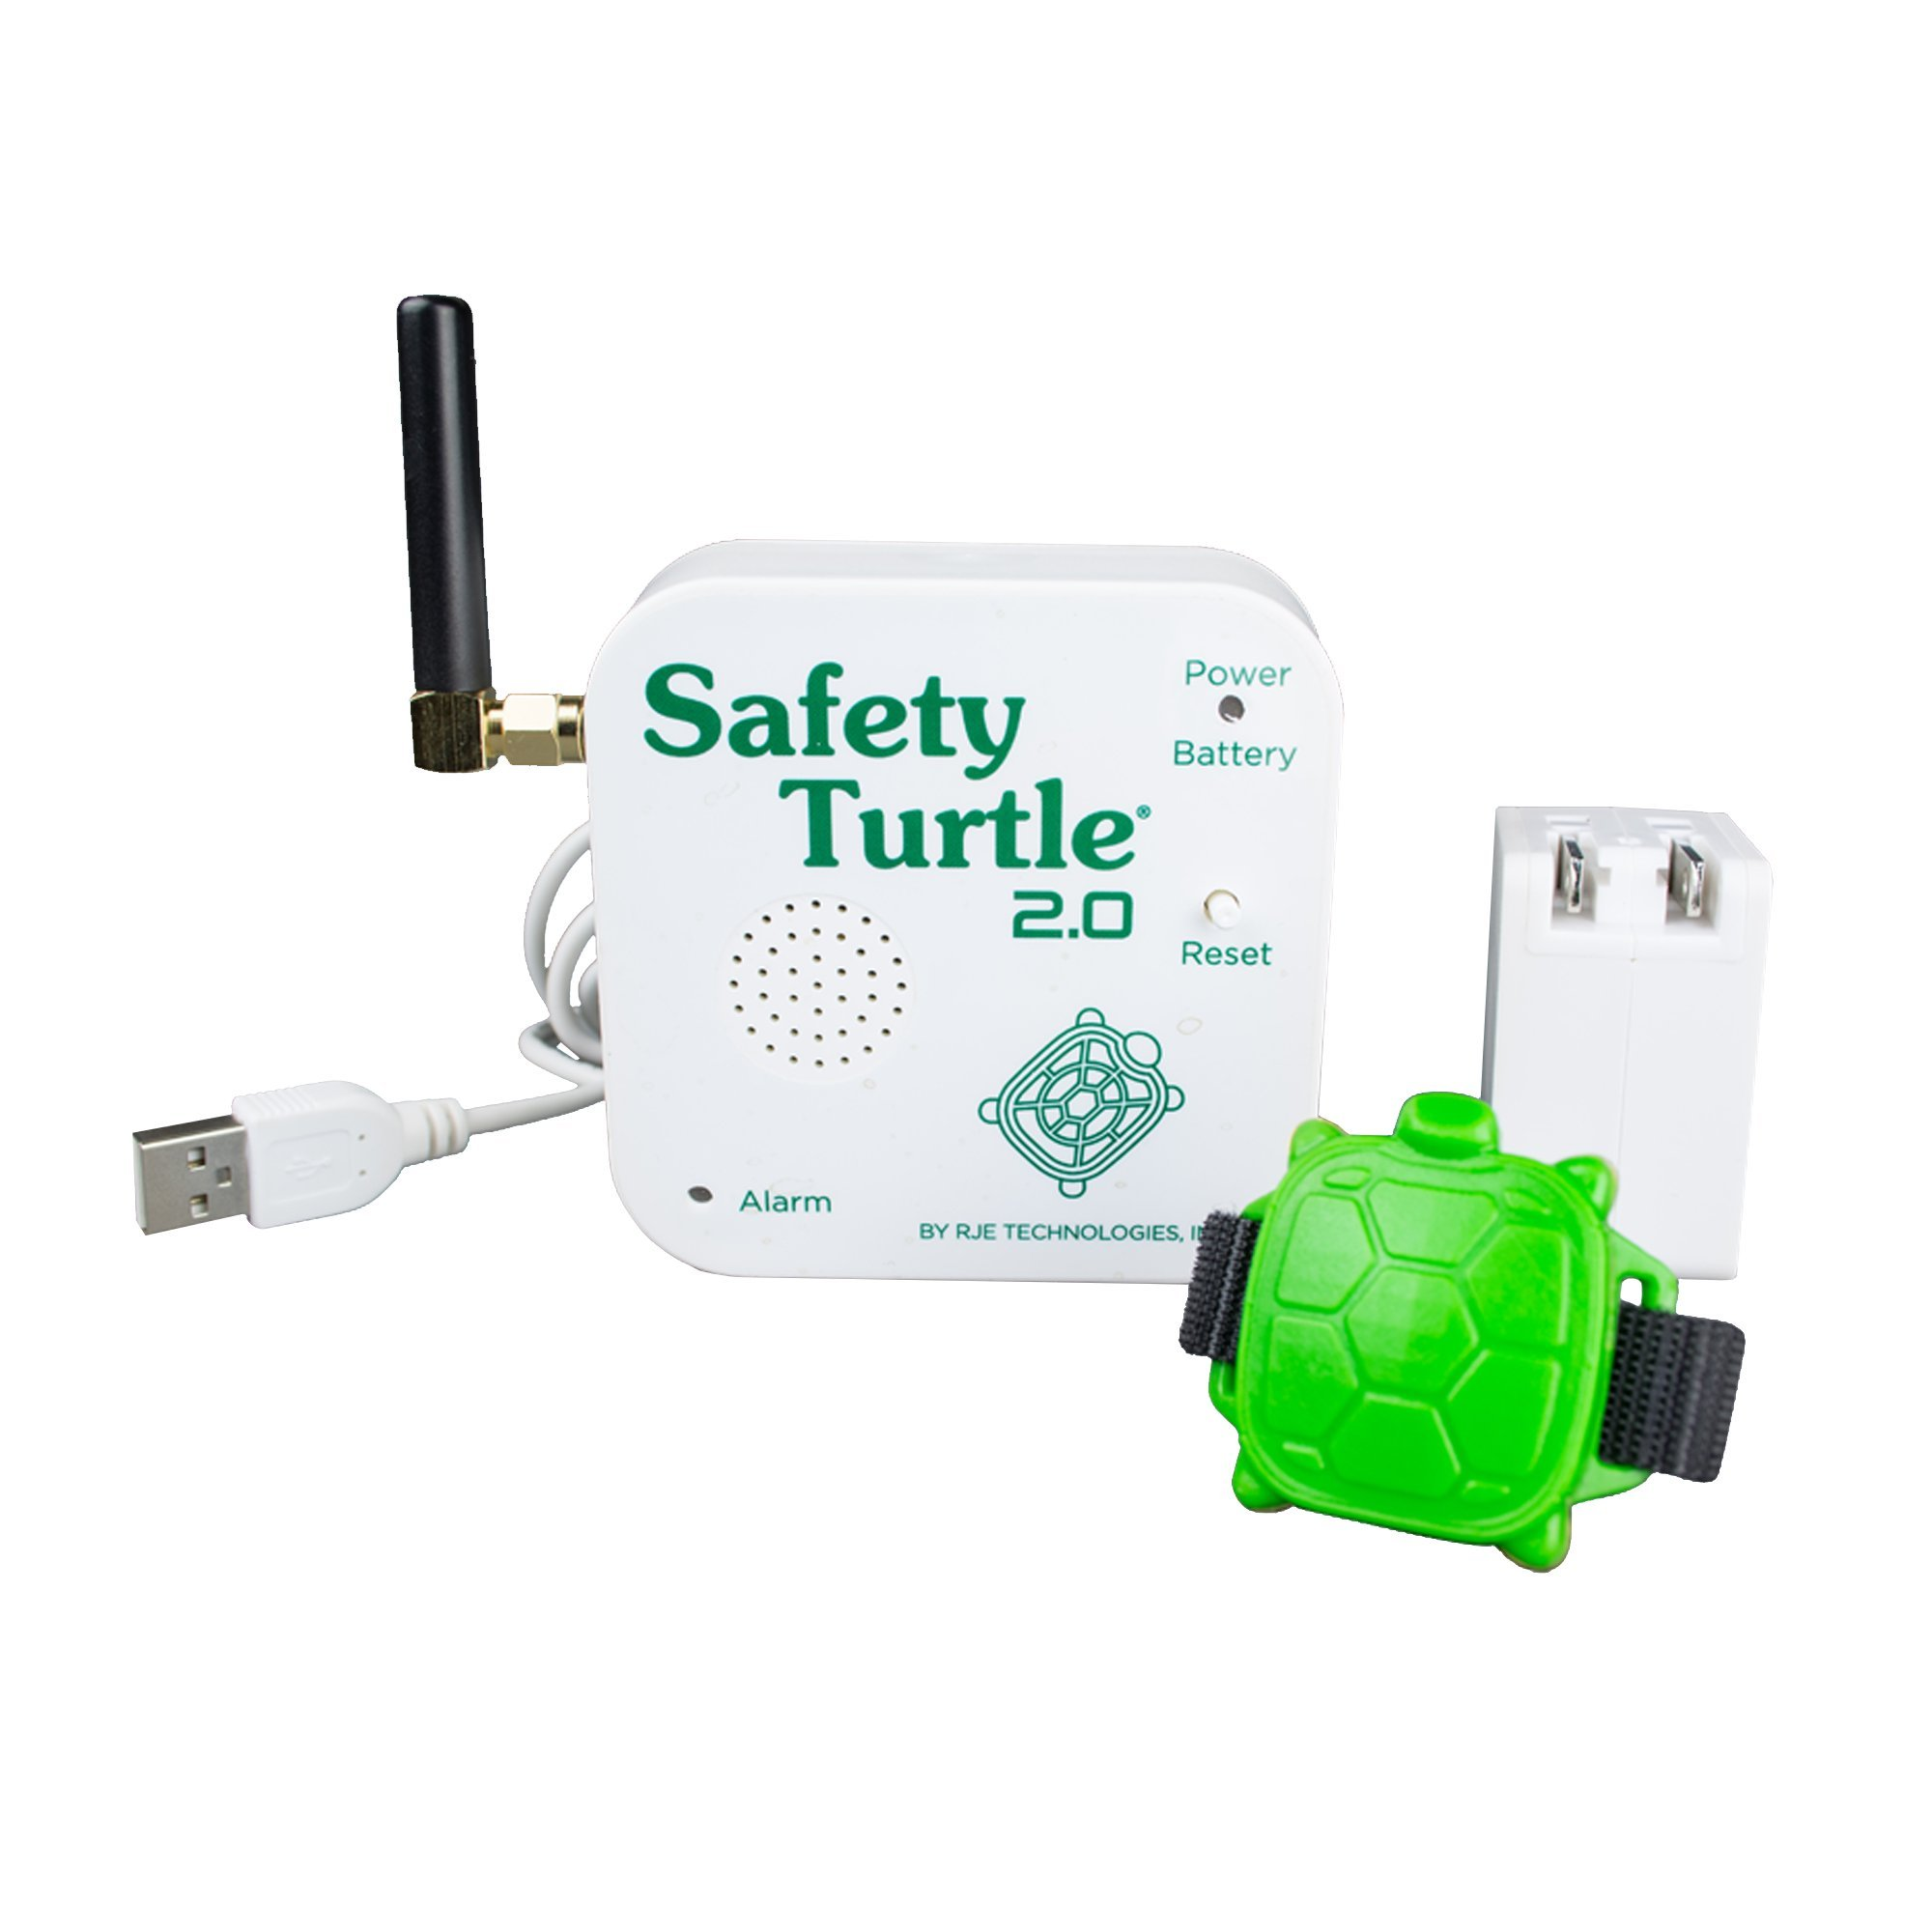 Safety Turtle New 2.0 Pet Immersion Pool/Water Alarm Kit for Pets ONLY by Safety Turtle